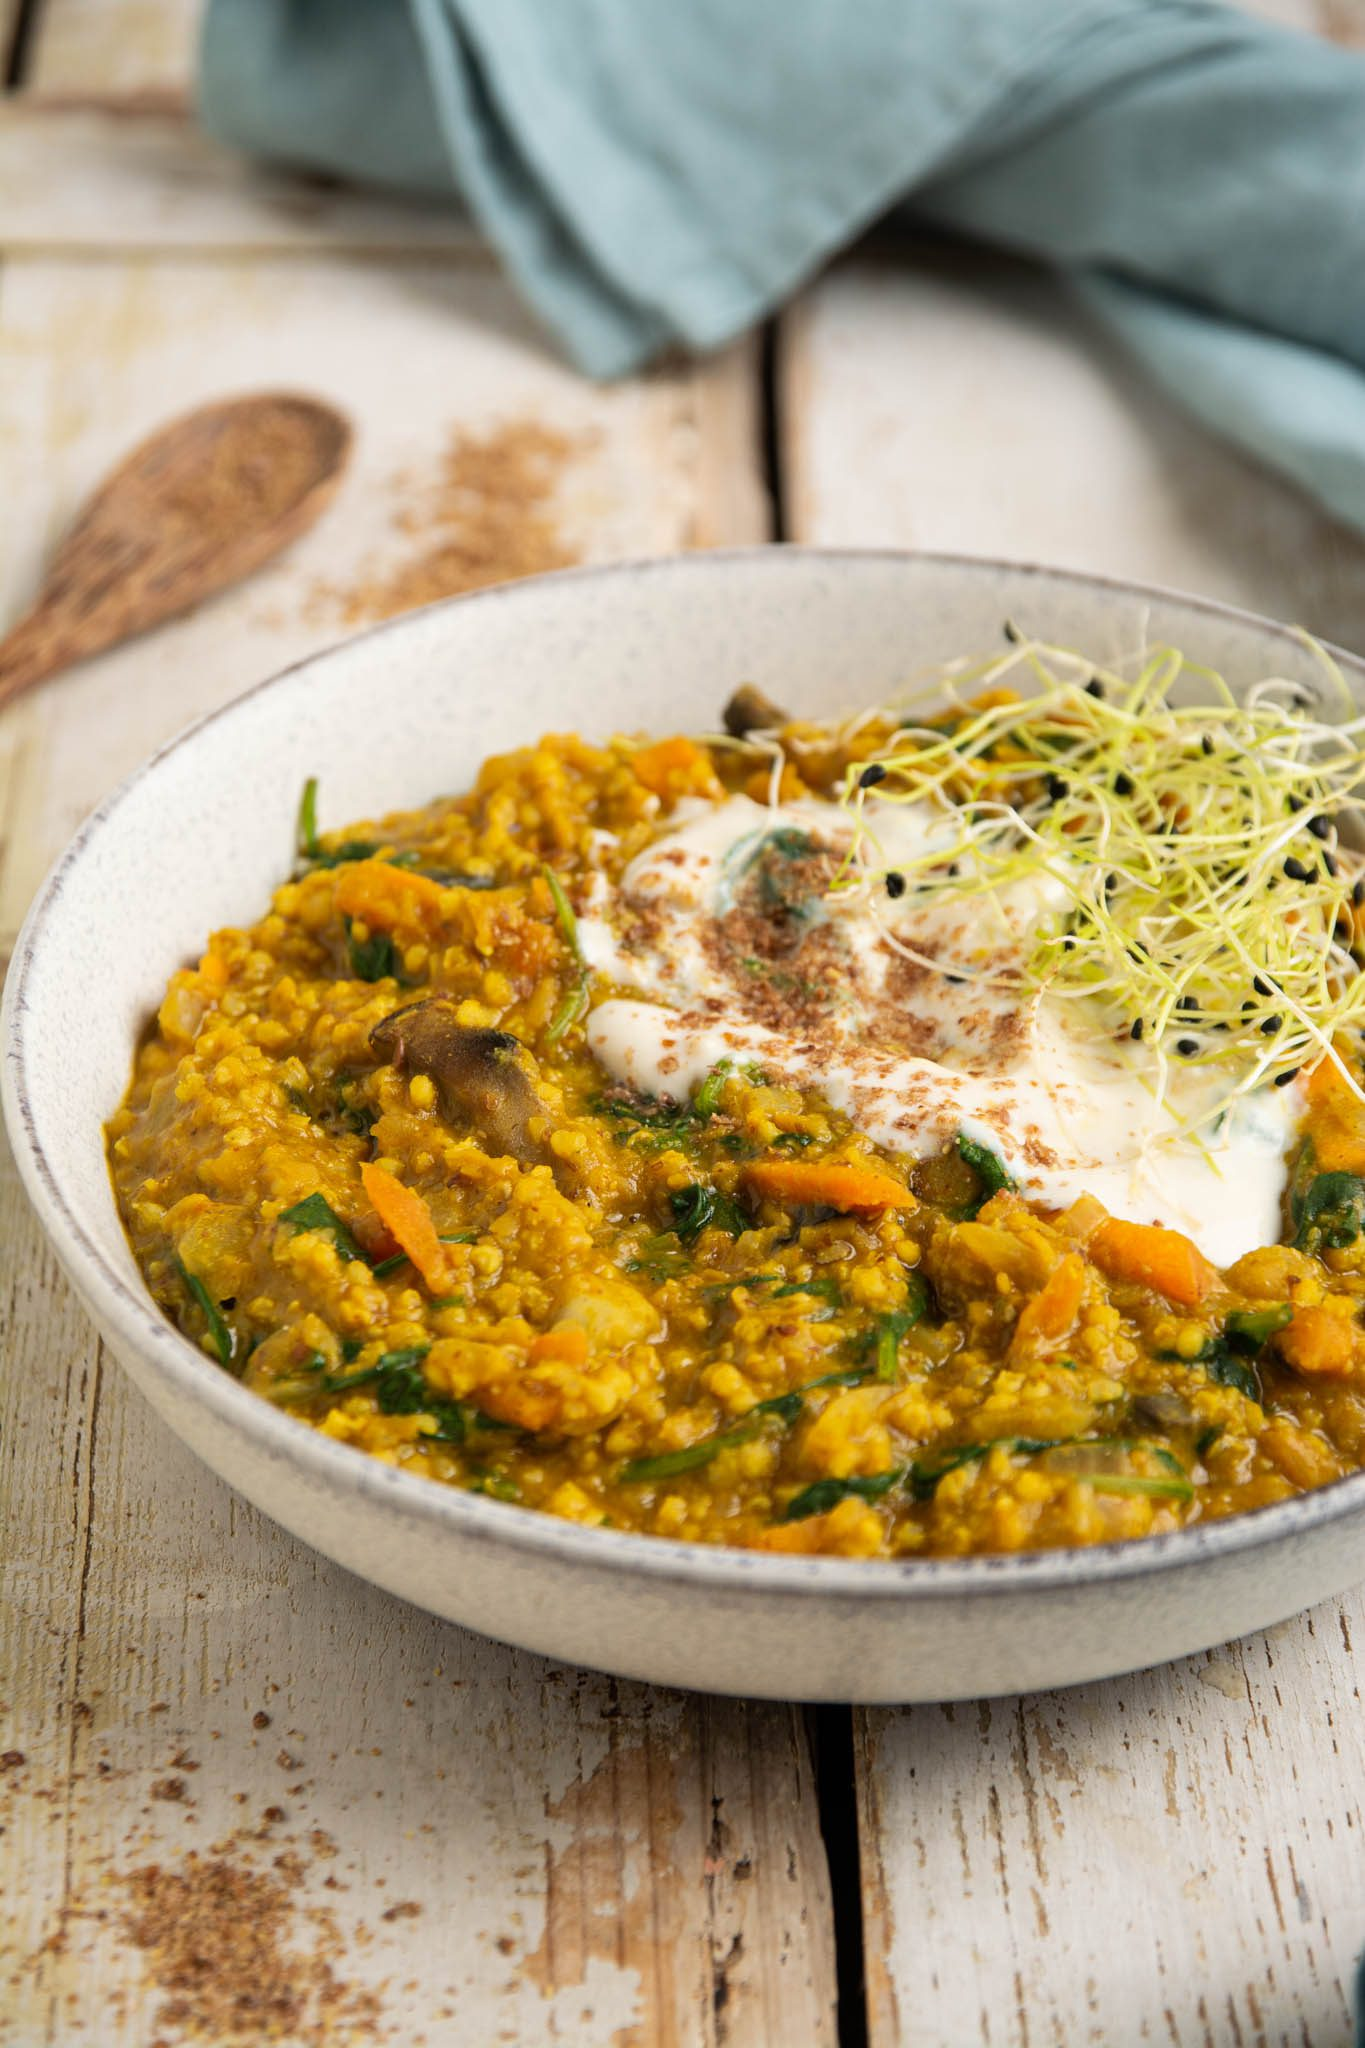 Learn how to make quick and easy millet and lentil stew for a nourishing balancing blood sugar lunch or dinner. You'll need 9 ingredients and about 20 minutes of your time.